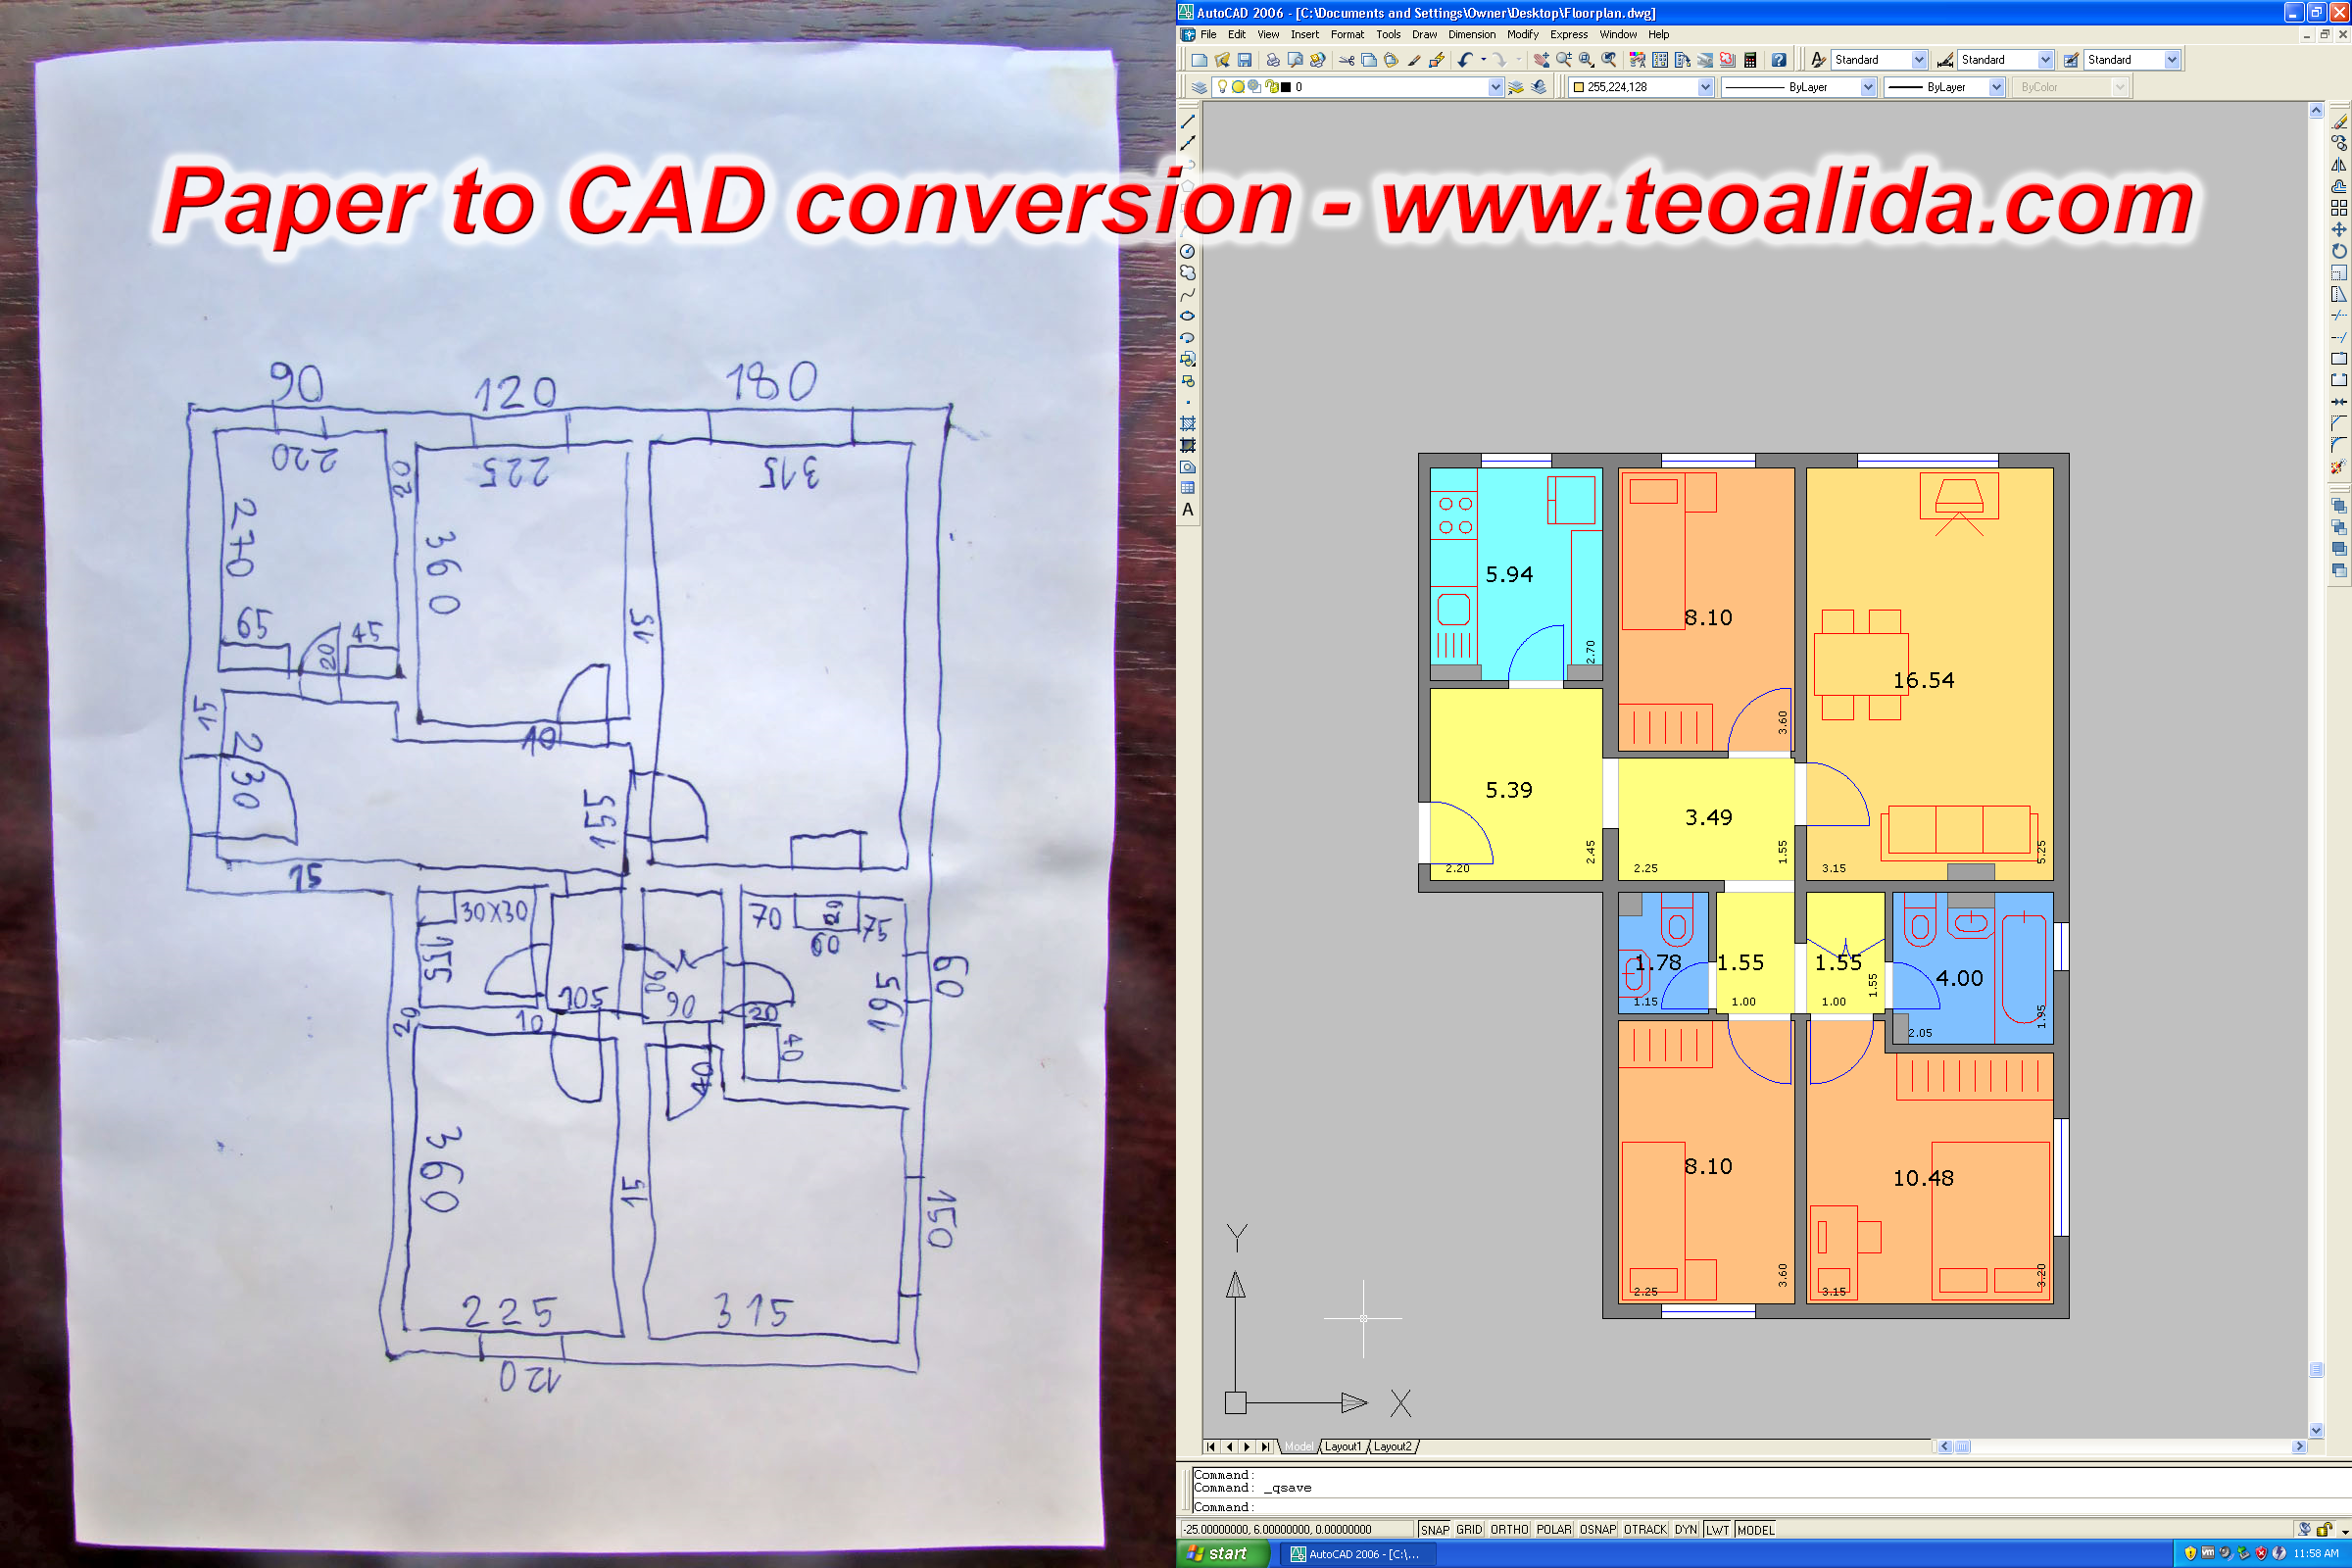 Paper to CAD conversion